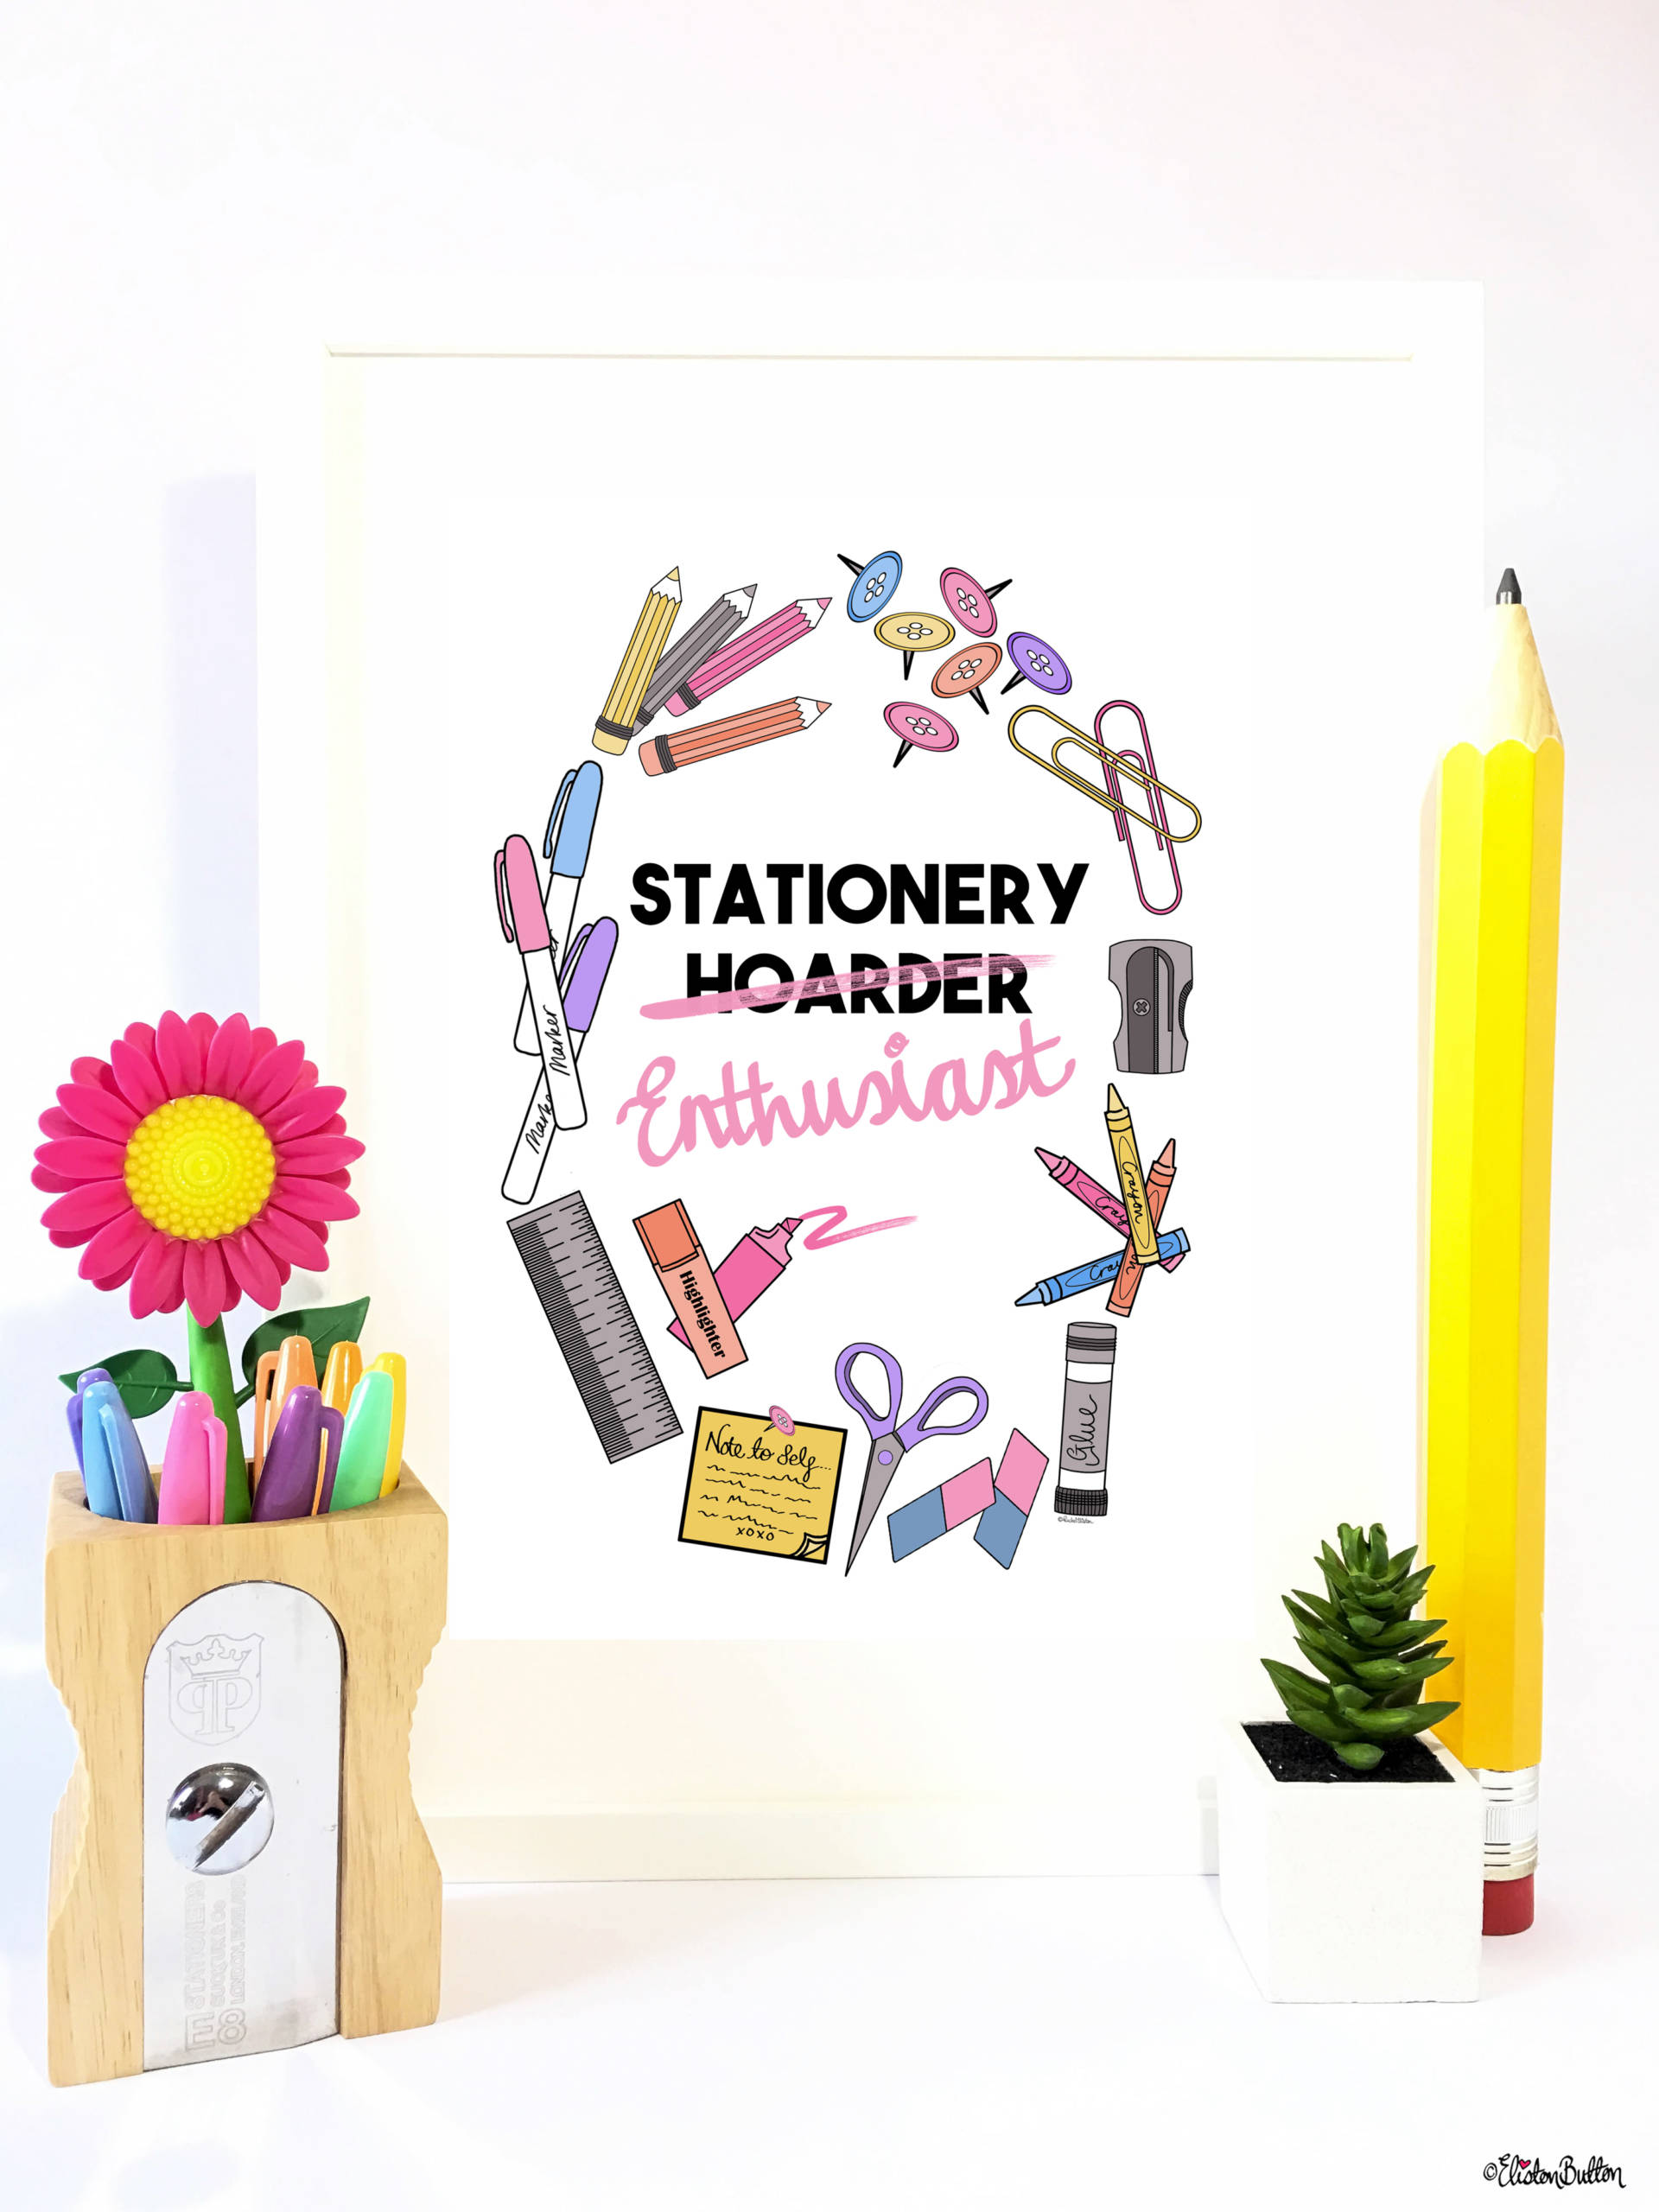 Stationery Enthusiast Print by Eliston Button in Frame with Giant Pencil and Sharpener - Create 30 - No. 18 & 19 - Stationery and Craft Supply Enthusiast Prints at www.elistonbutton.com - Eliston Button - That Crafty Kid – Art, Design, Craft & Adventure.